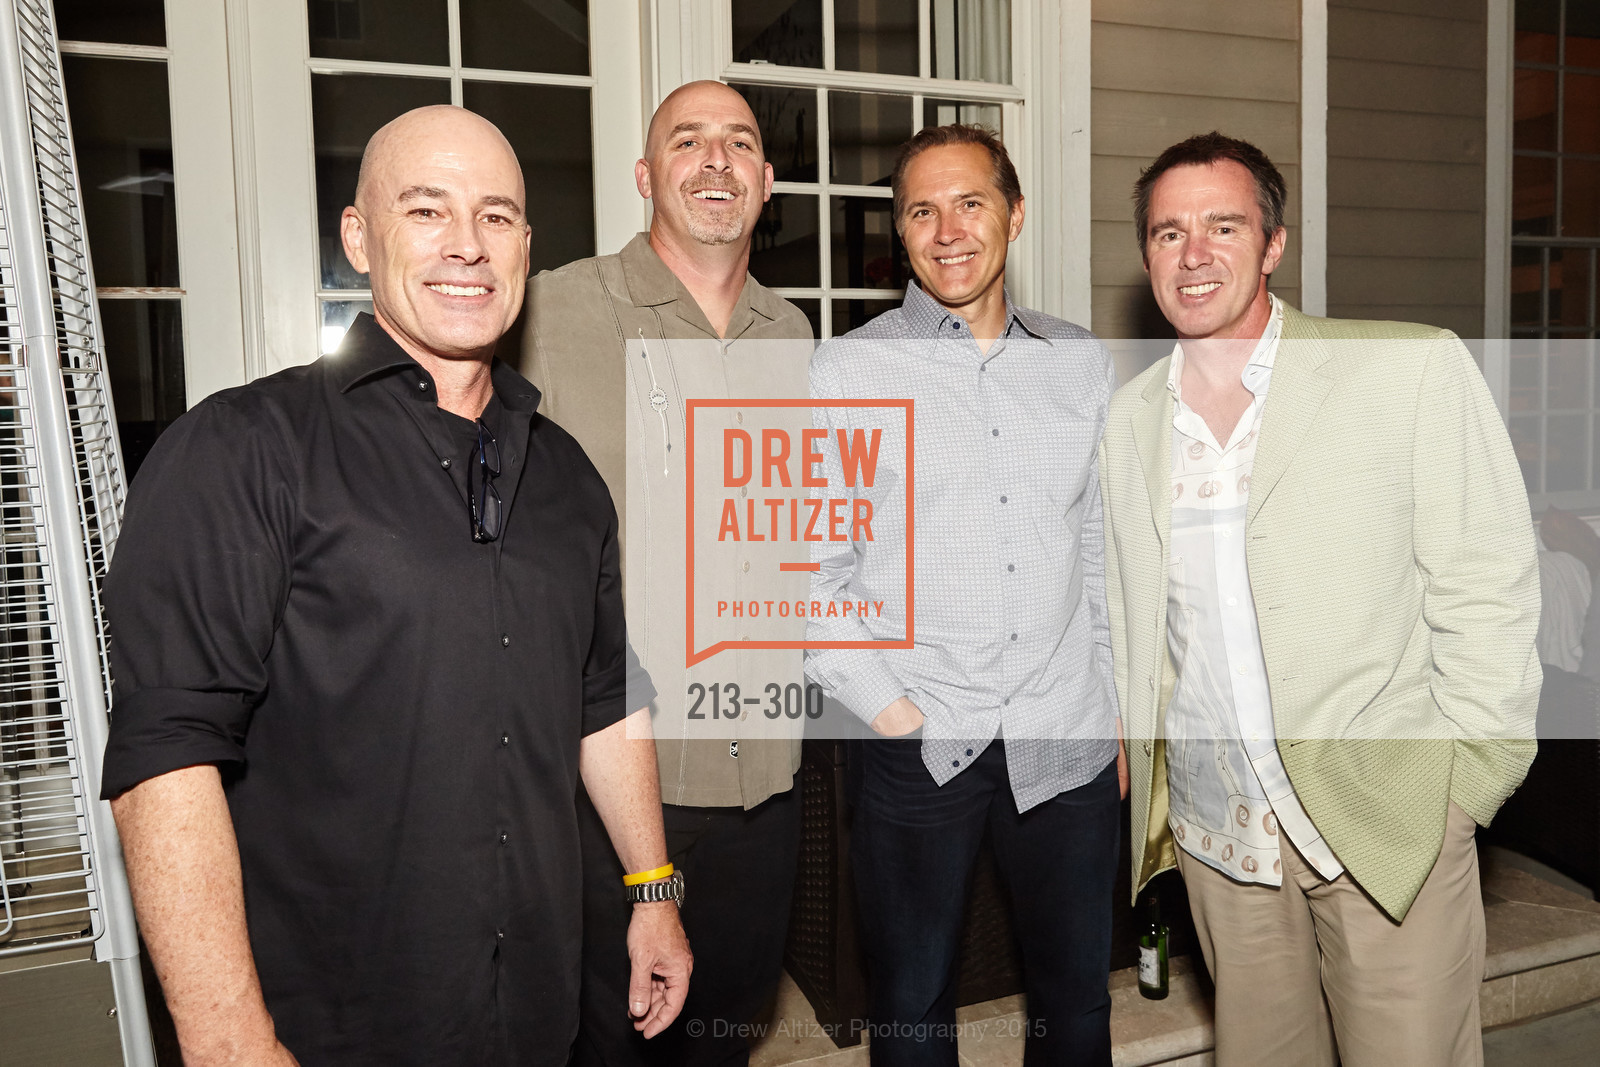 John Kelly, Dave Schwartz, Jason Kerr, Breast Cancer Awareness Fund Presents This Old Bag Silicon Valley Preview Party, Private Residence, September 19th, 2015,Drew Altizer, Drew Altizer Photography, full-service event agency, private events, San Francisco photographer, photographer California